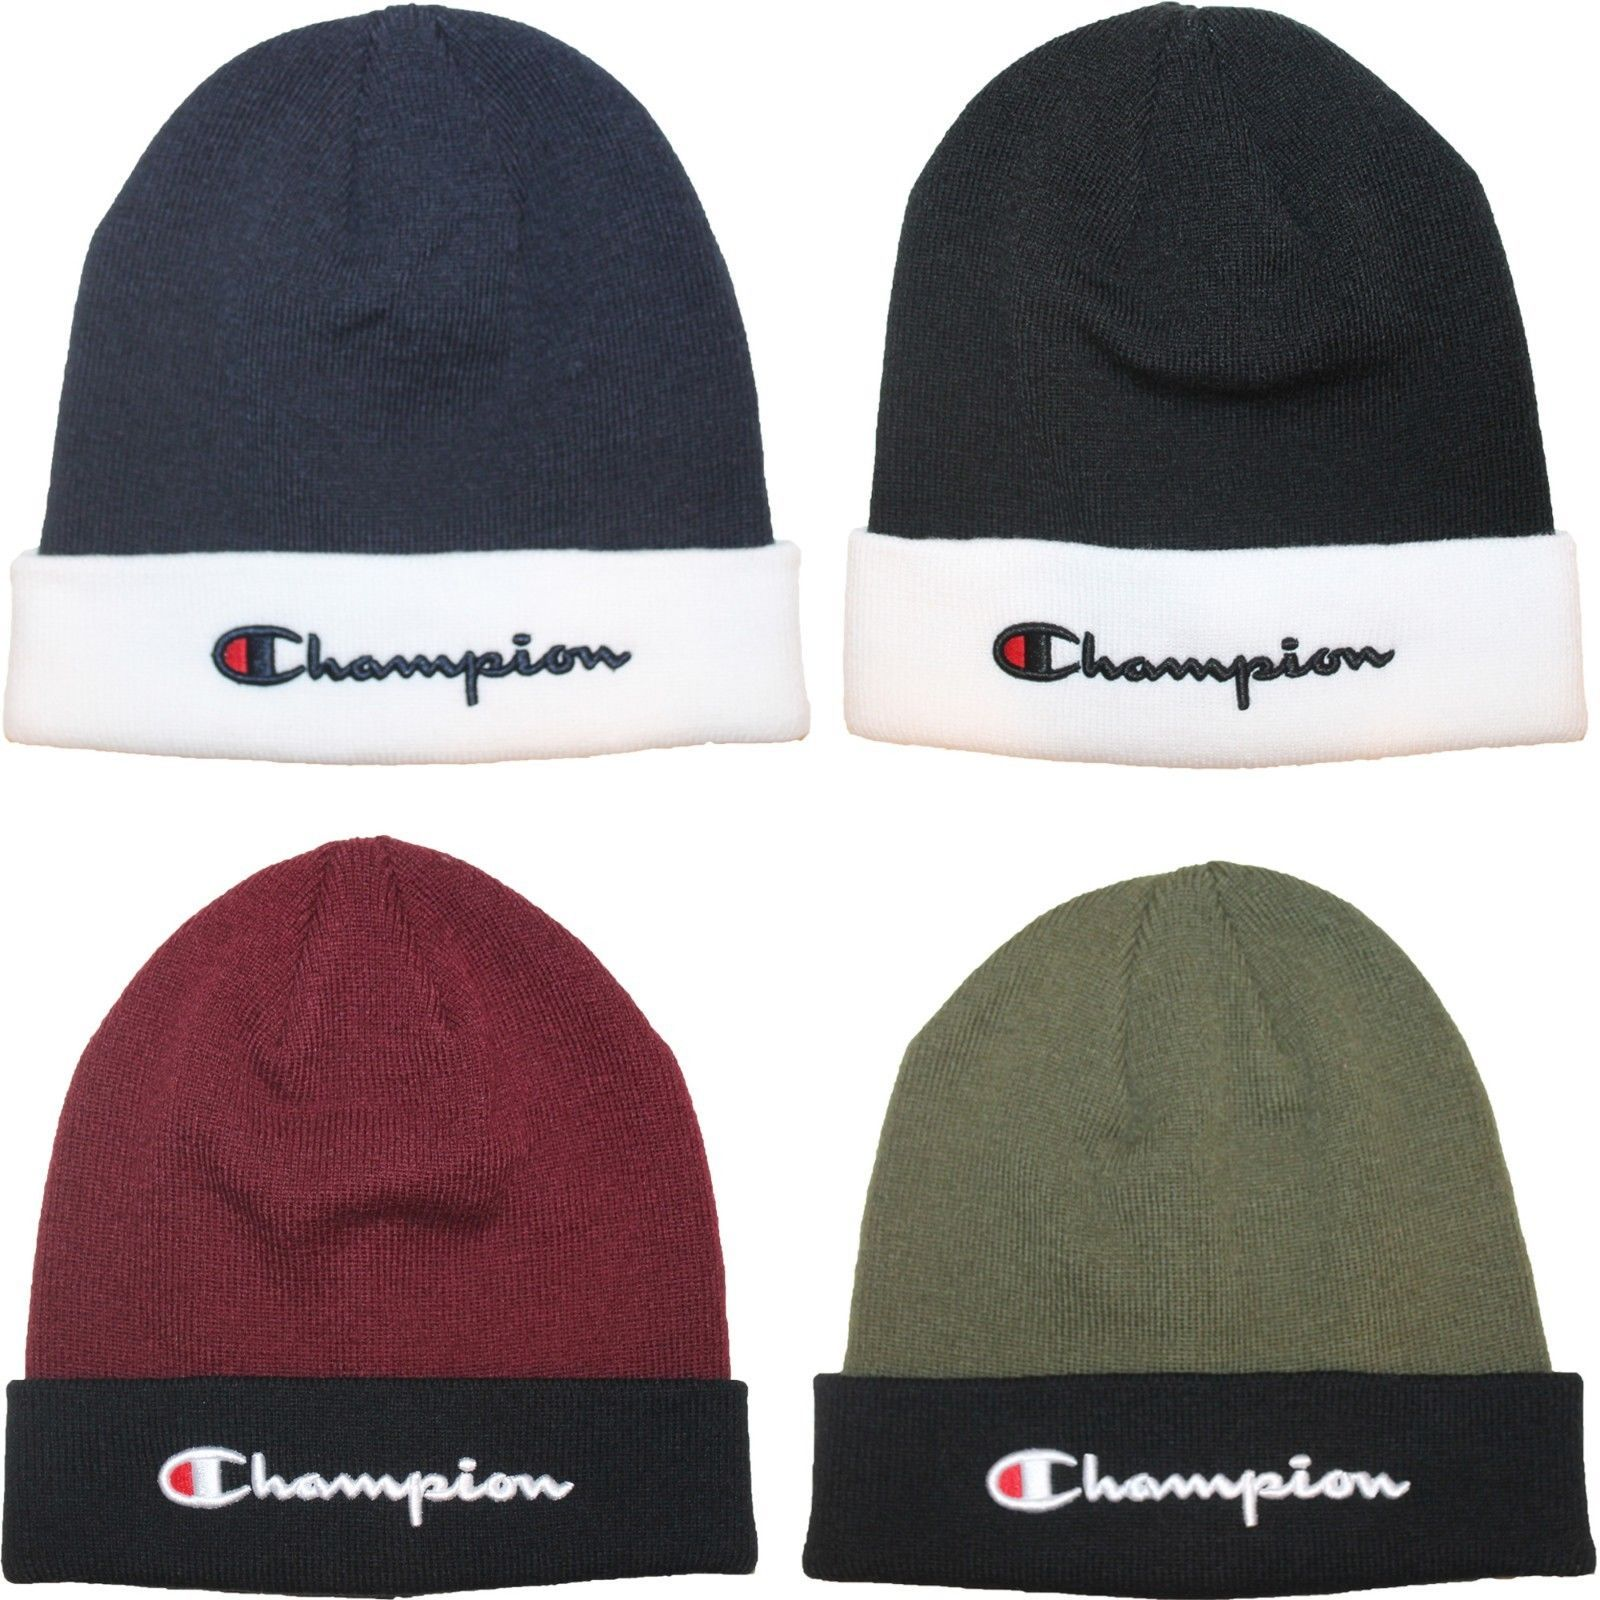 0226c8e555b Hats 163543  Champion Script Logo Two Tone Beanie Skull Skully Cap Hat One  Size Fits Most -  BUY IT NOW ONLY   19.9 on  eBay  champion  script  beanie  ...